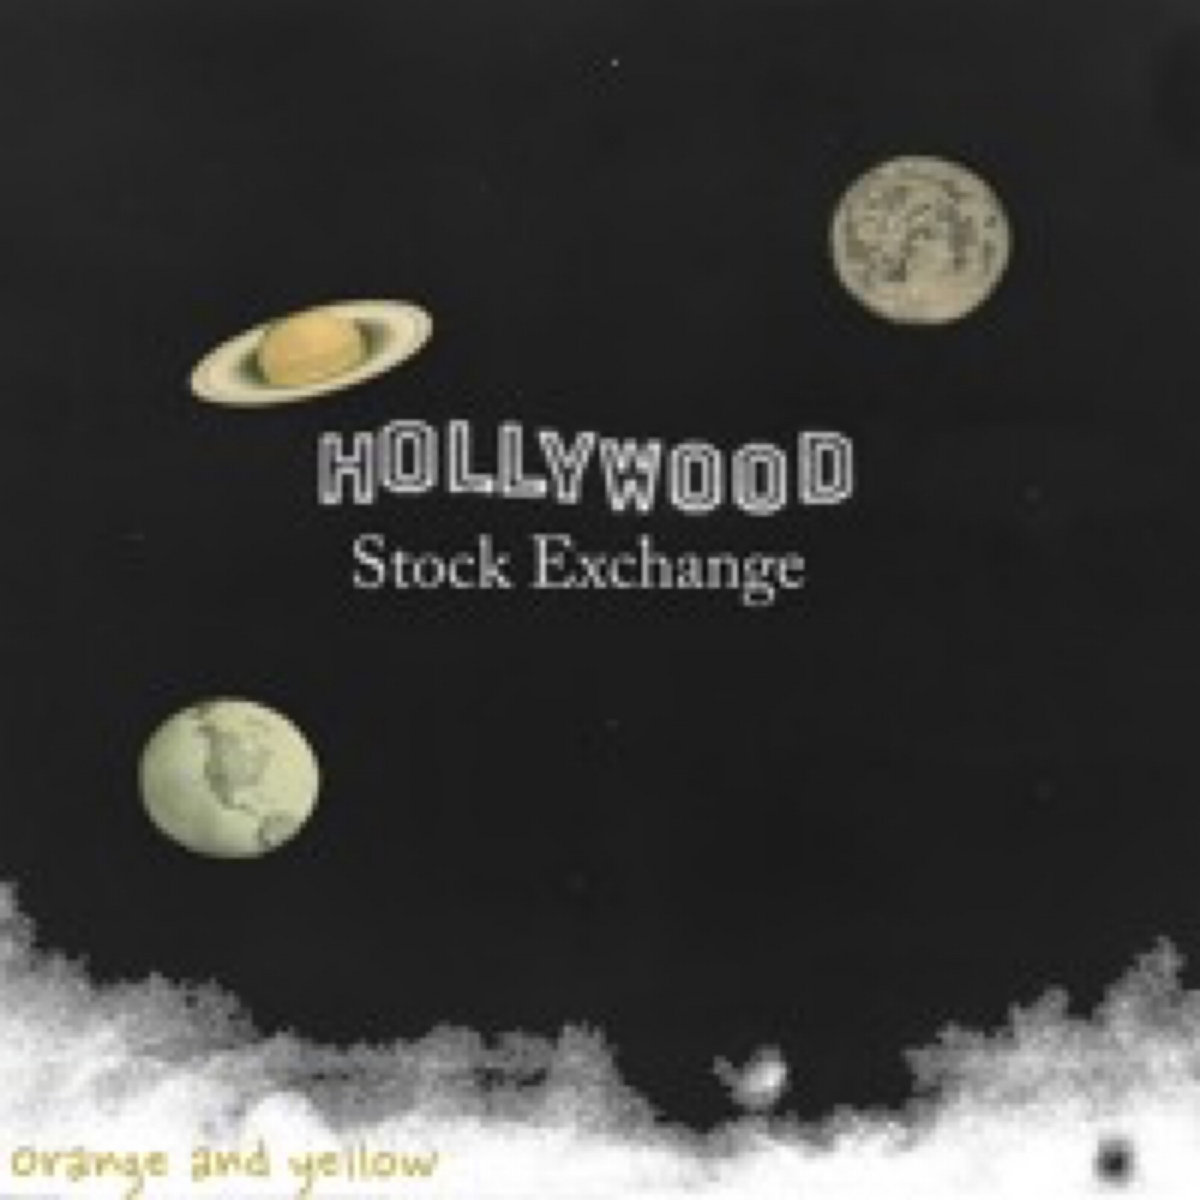 Orange and Yellow EP | Hollywood Stock Exchange